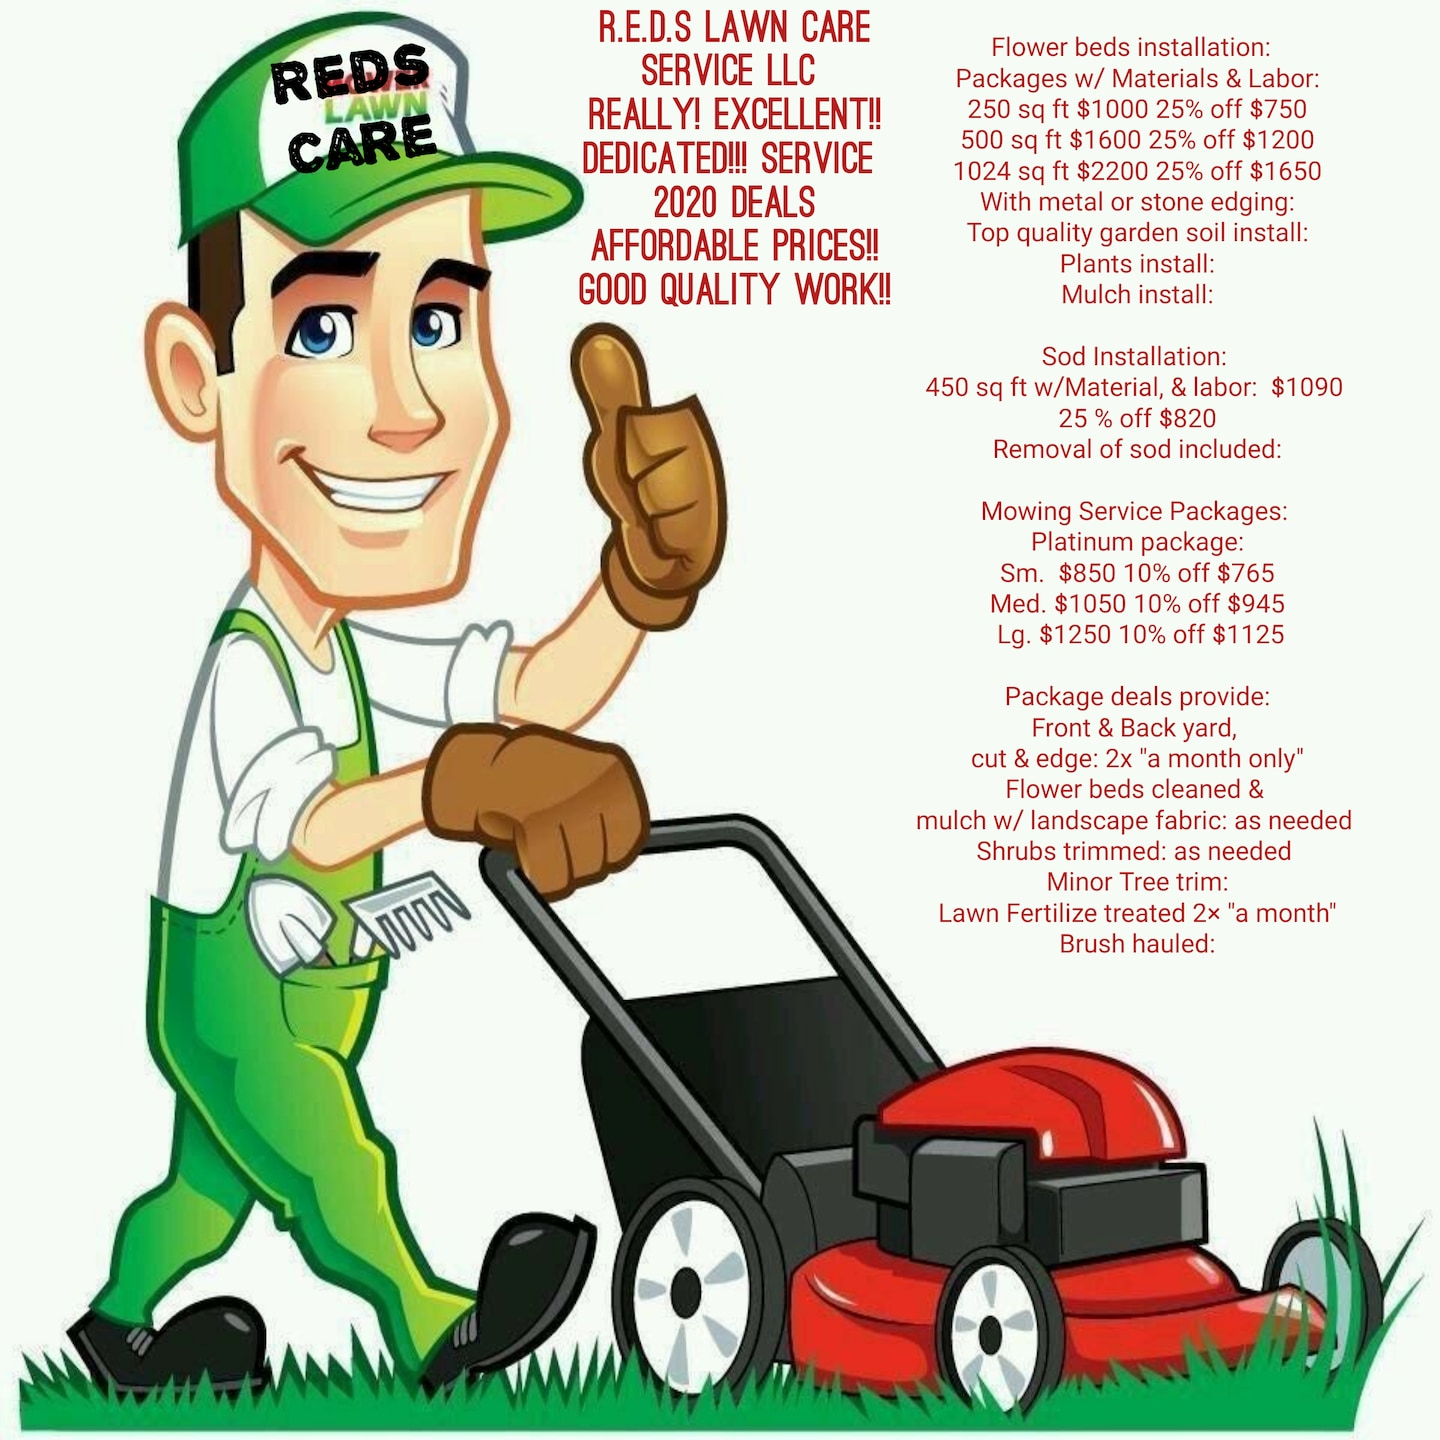 Reds Lawn Care Service